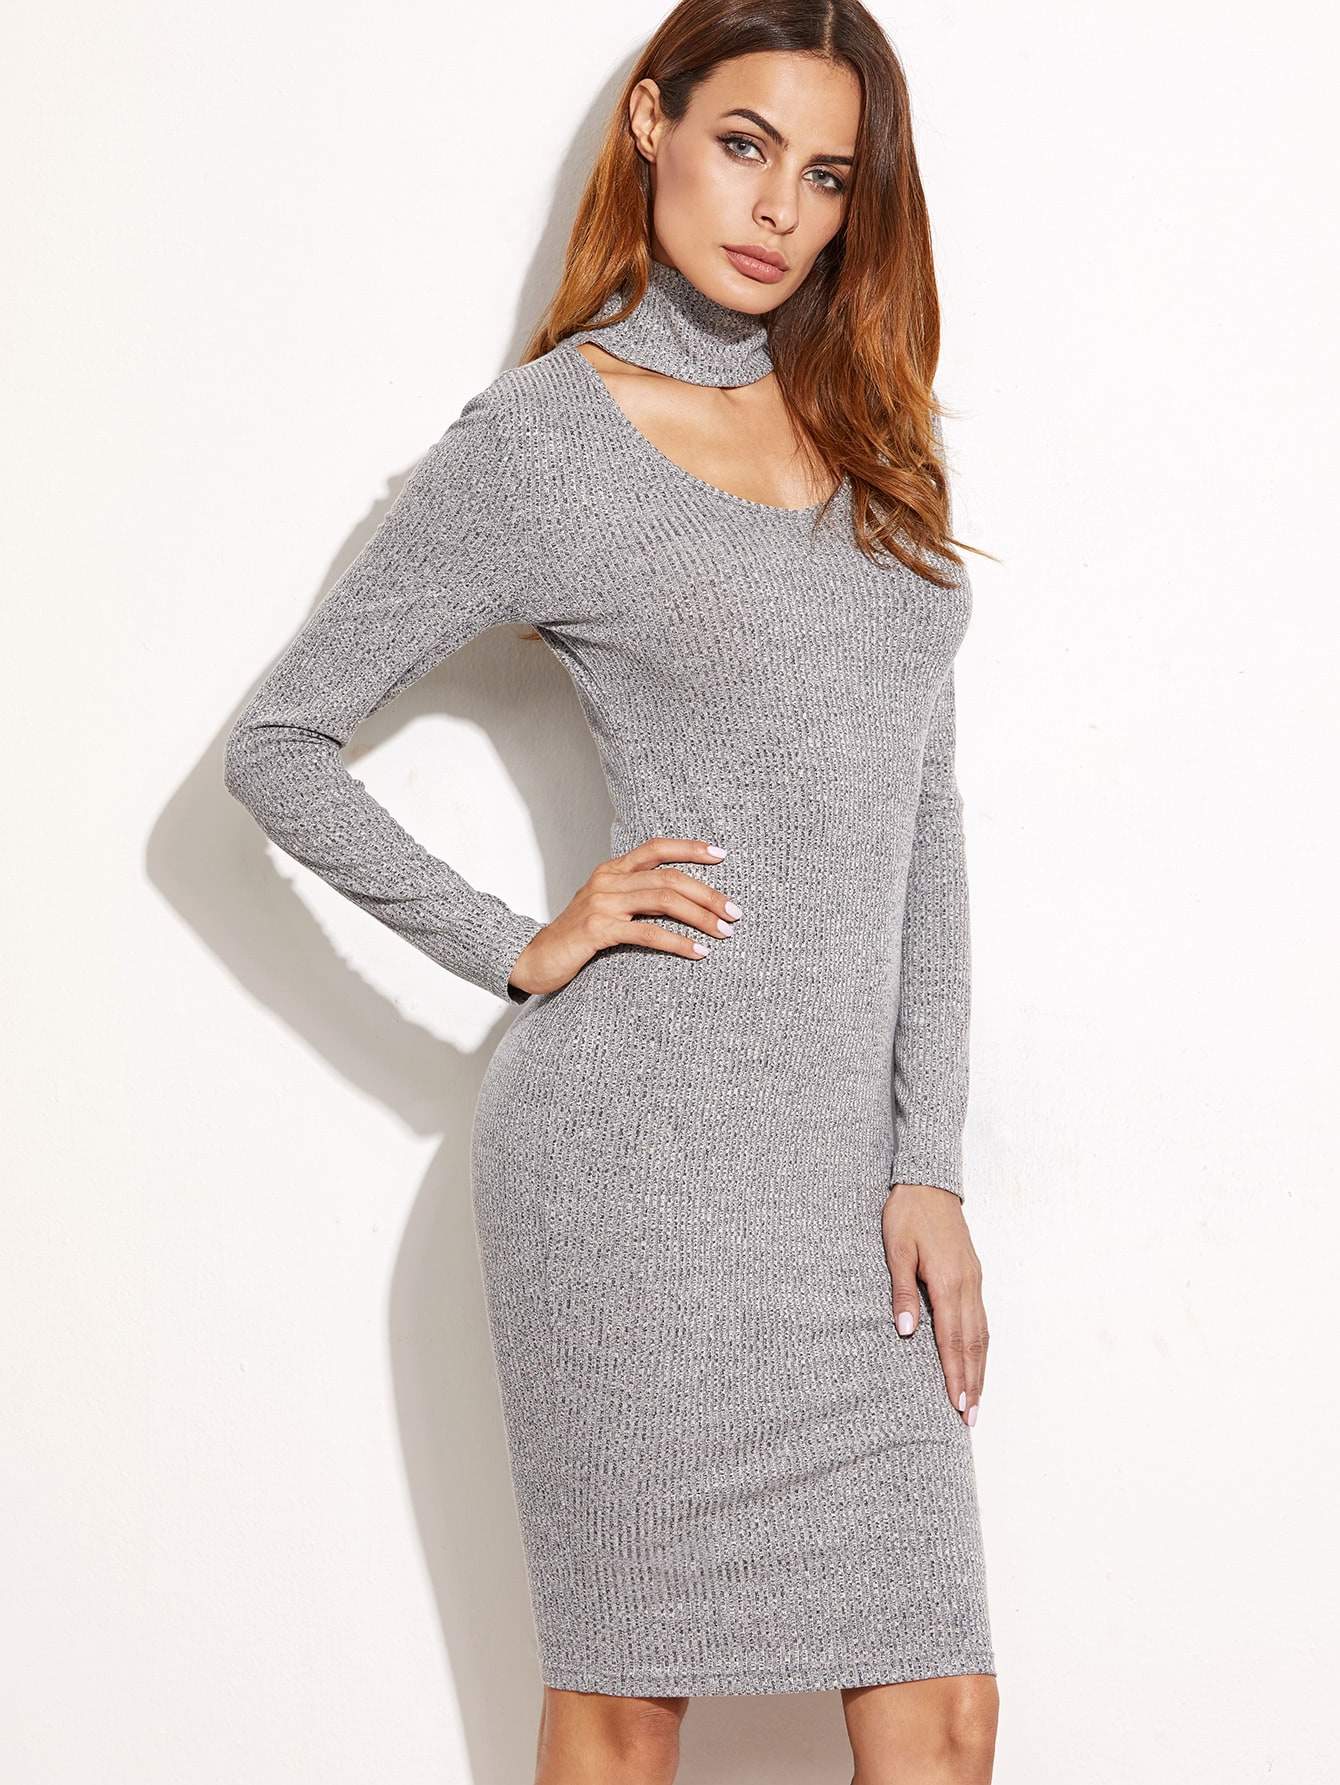 Cutout Choker Neckline Ribbed Knit Dress dress161103712